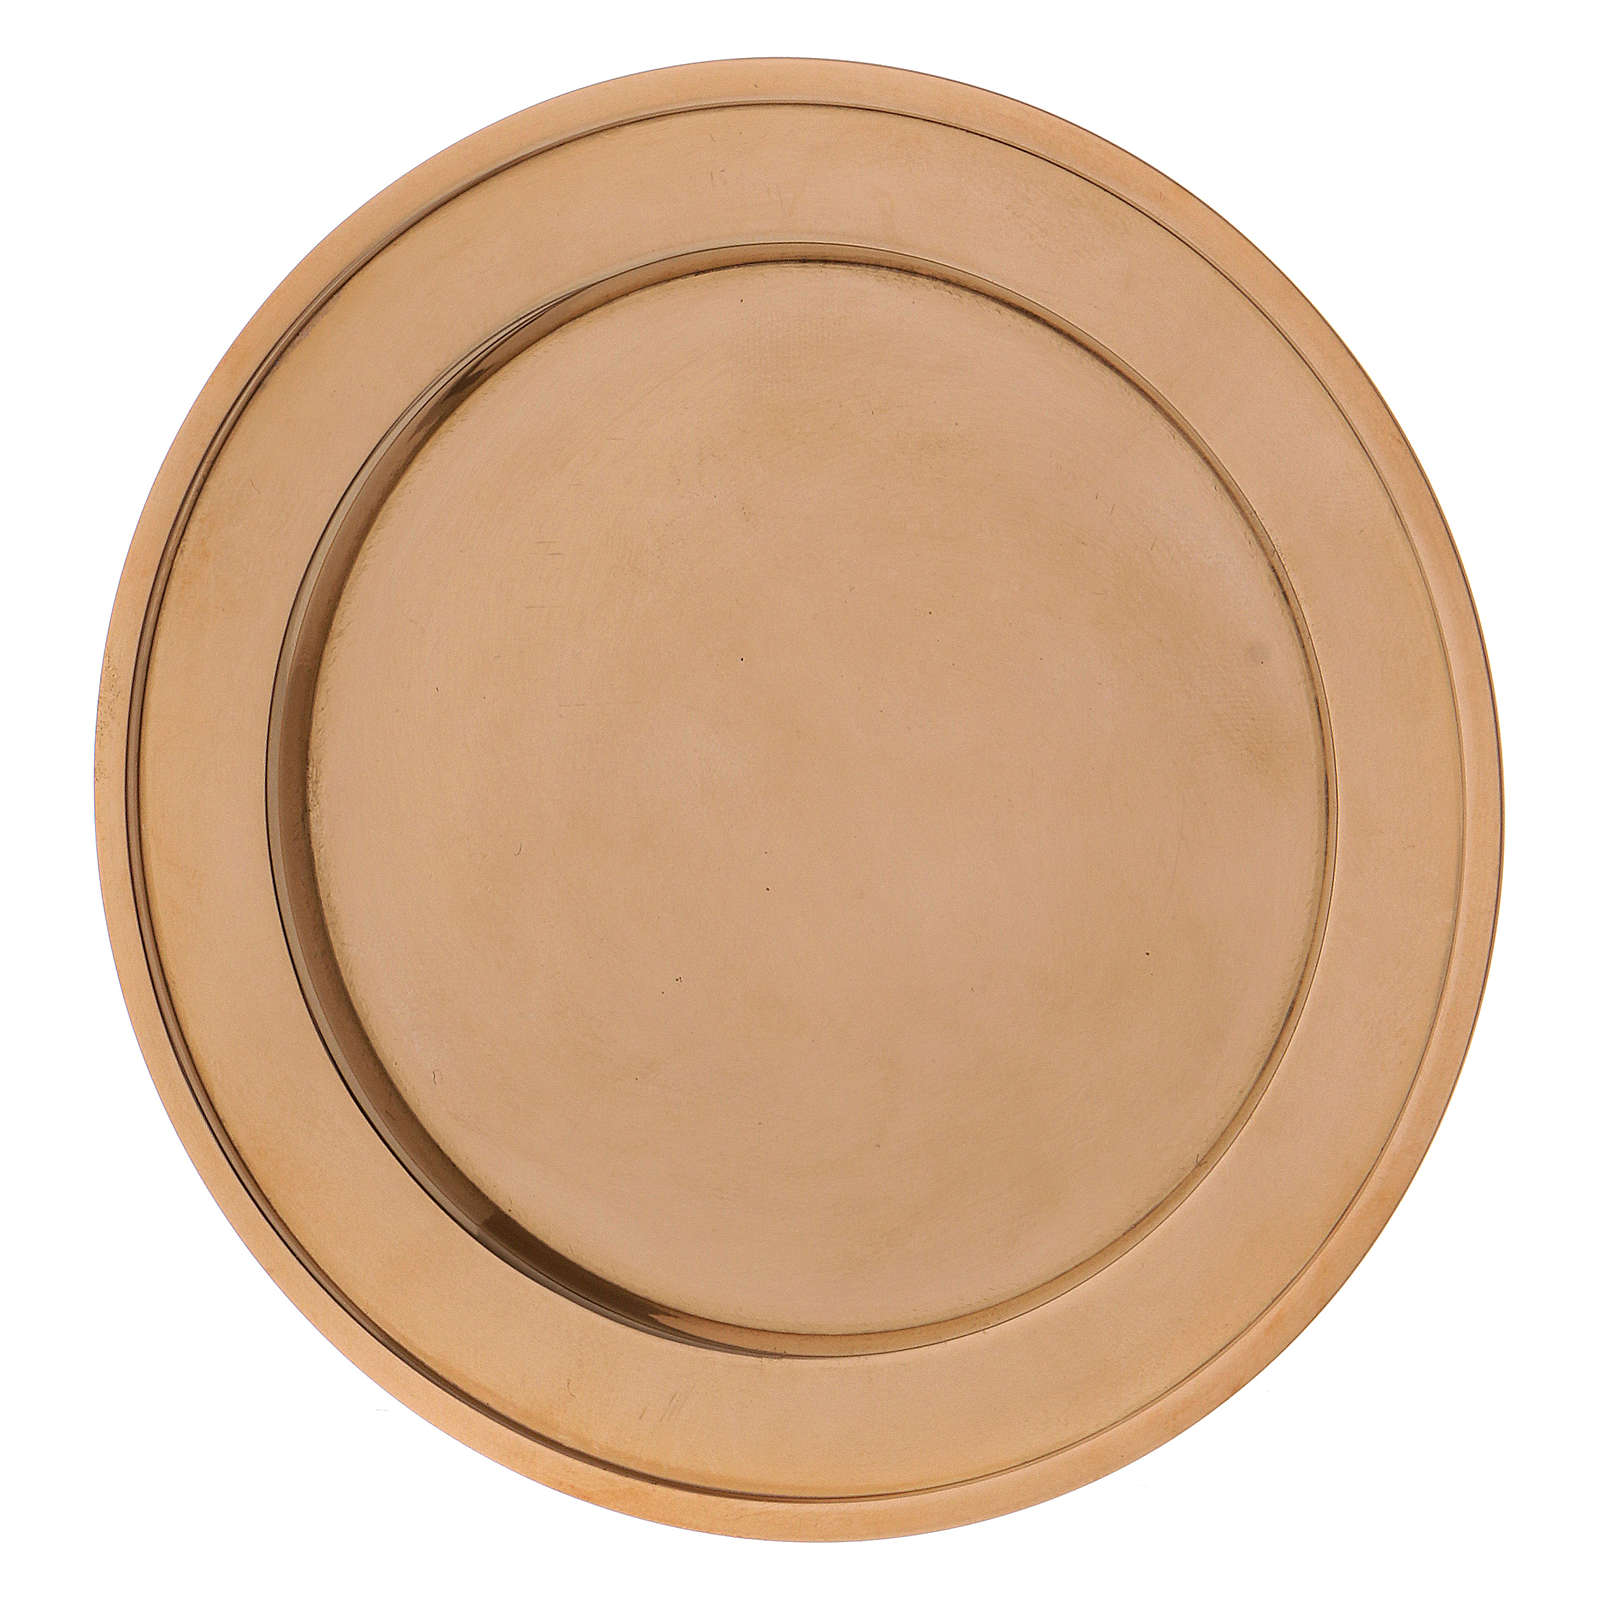 Candle holder plate in gold-plated brass 3